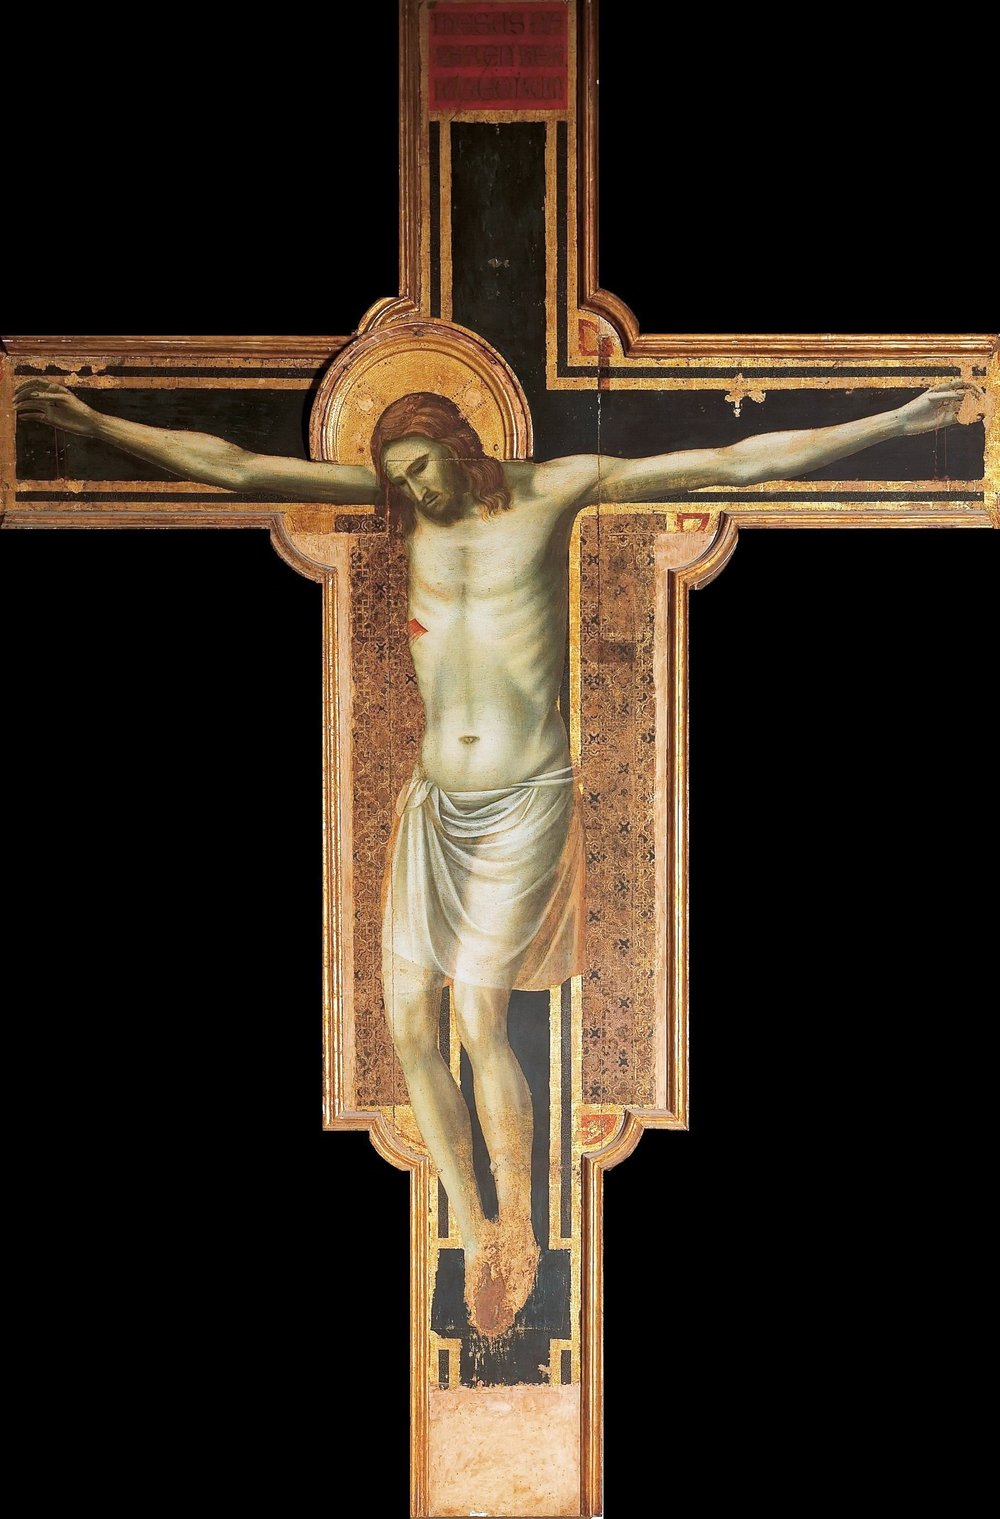 The Crucifixion , Giotto di Bondone, 1315, Rimini, Italy.